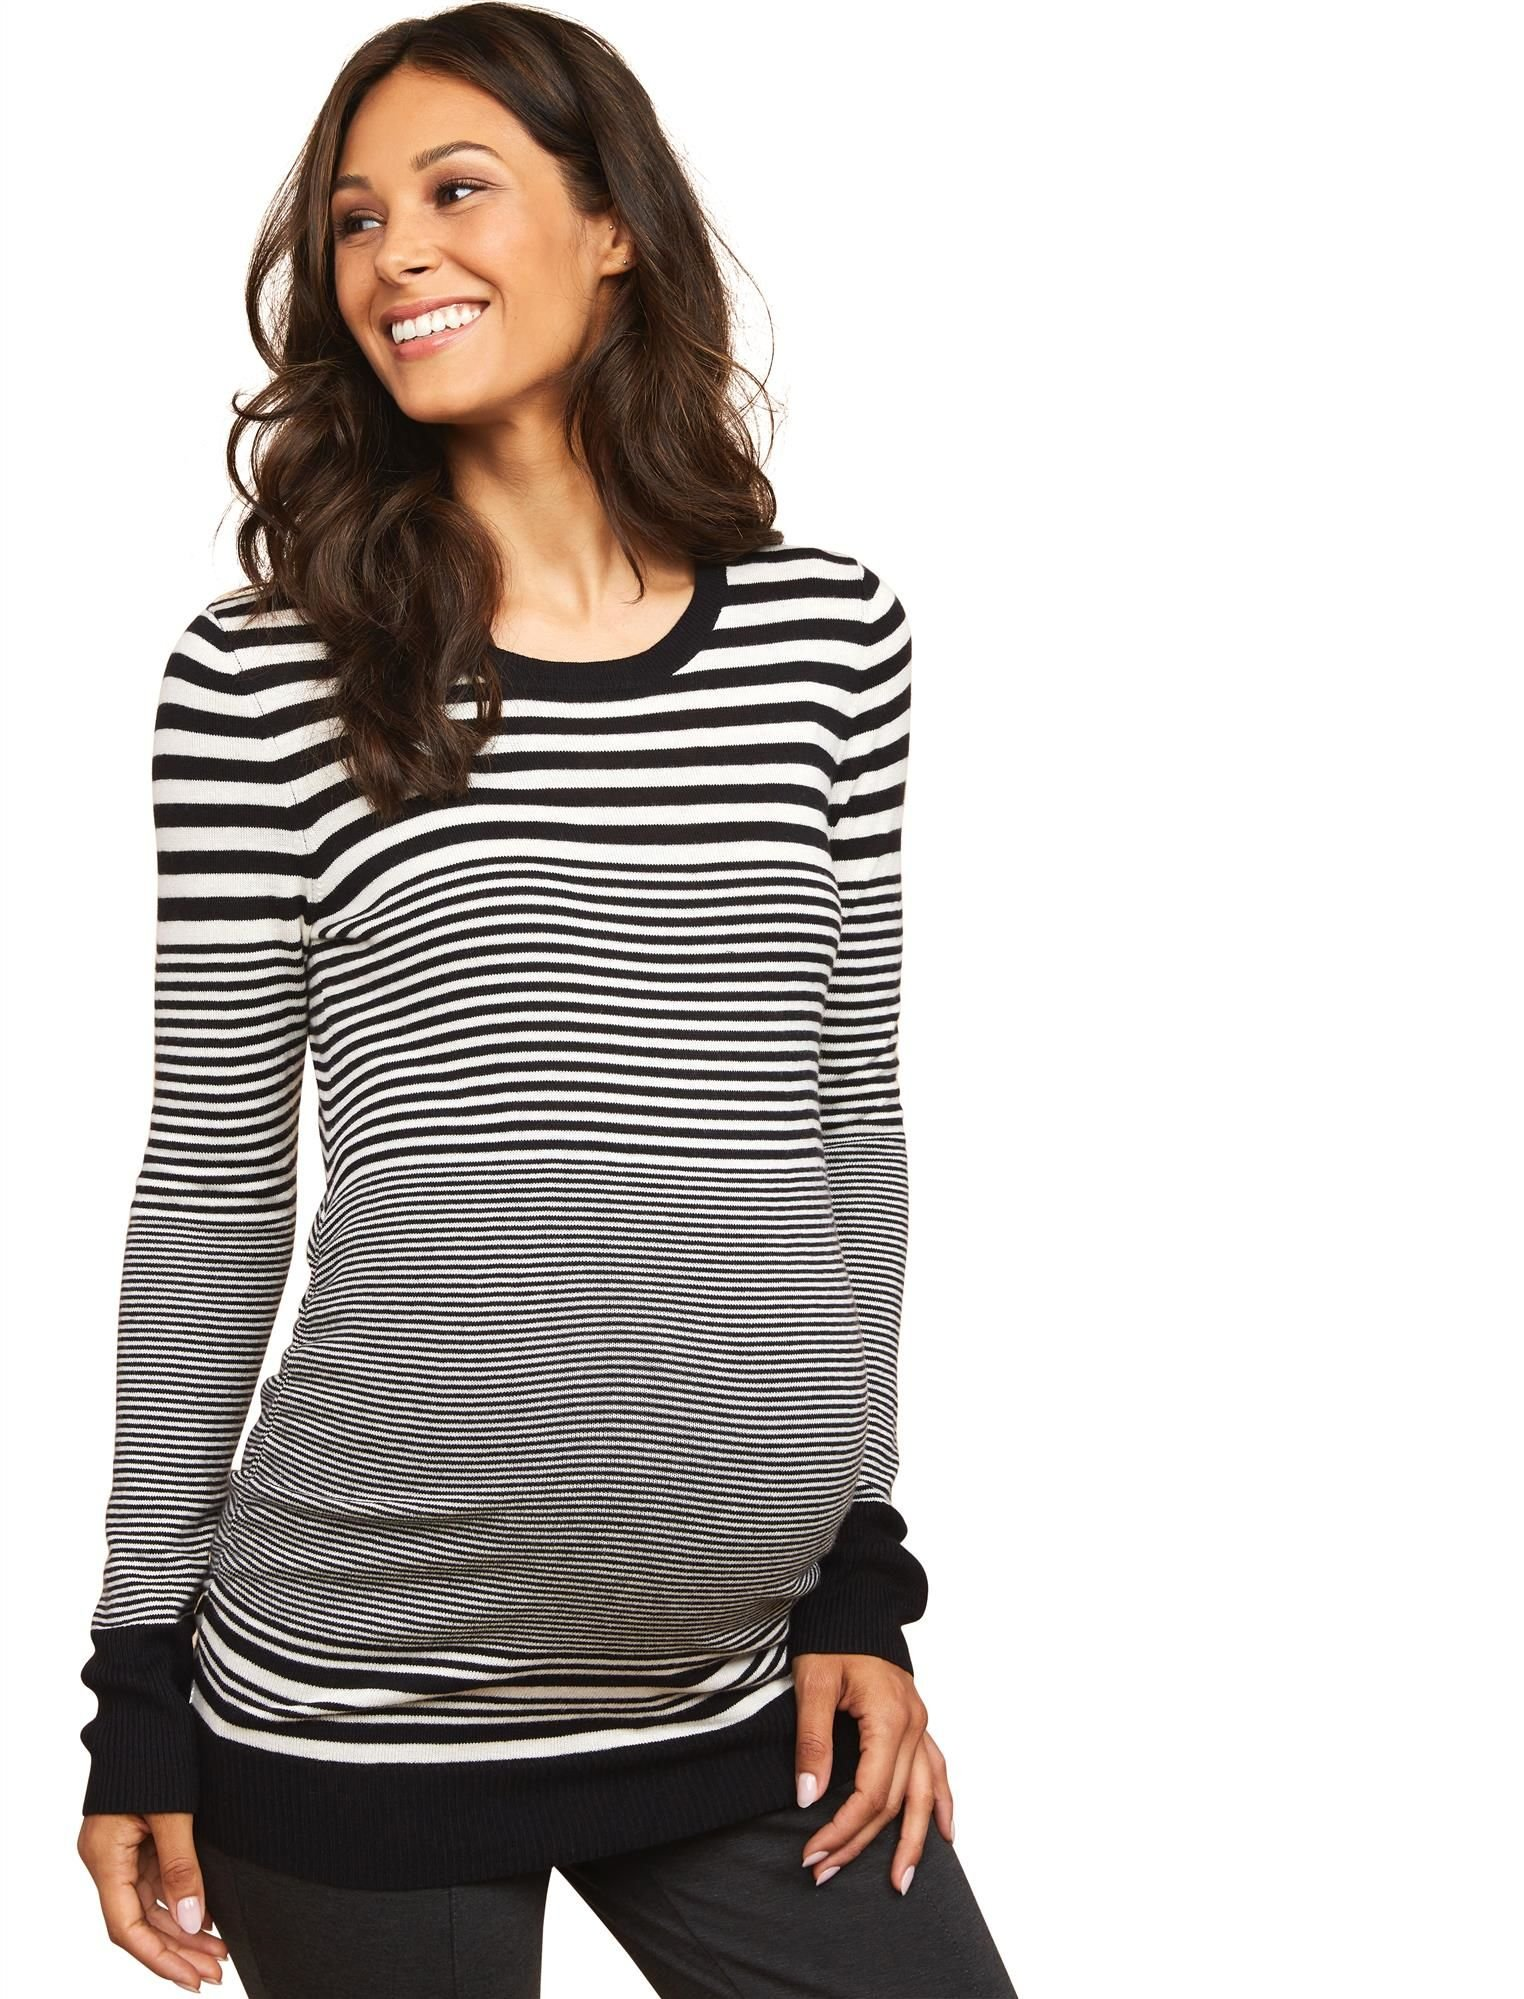 Motherhood Maternity Women's Long Sleeve Crew Neck Side Ruched Sweater, Black and White Stripe, Extra Large